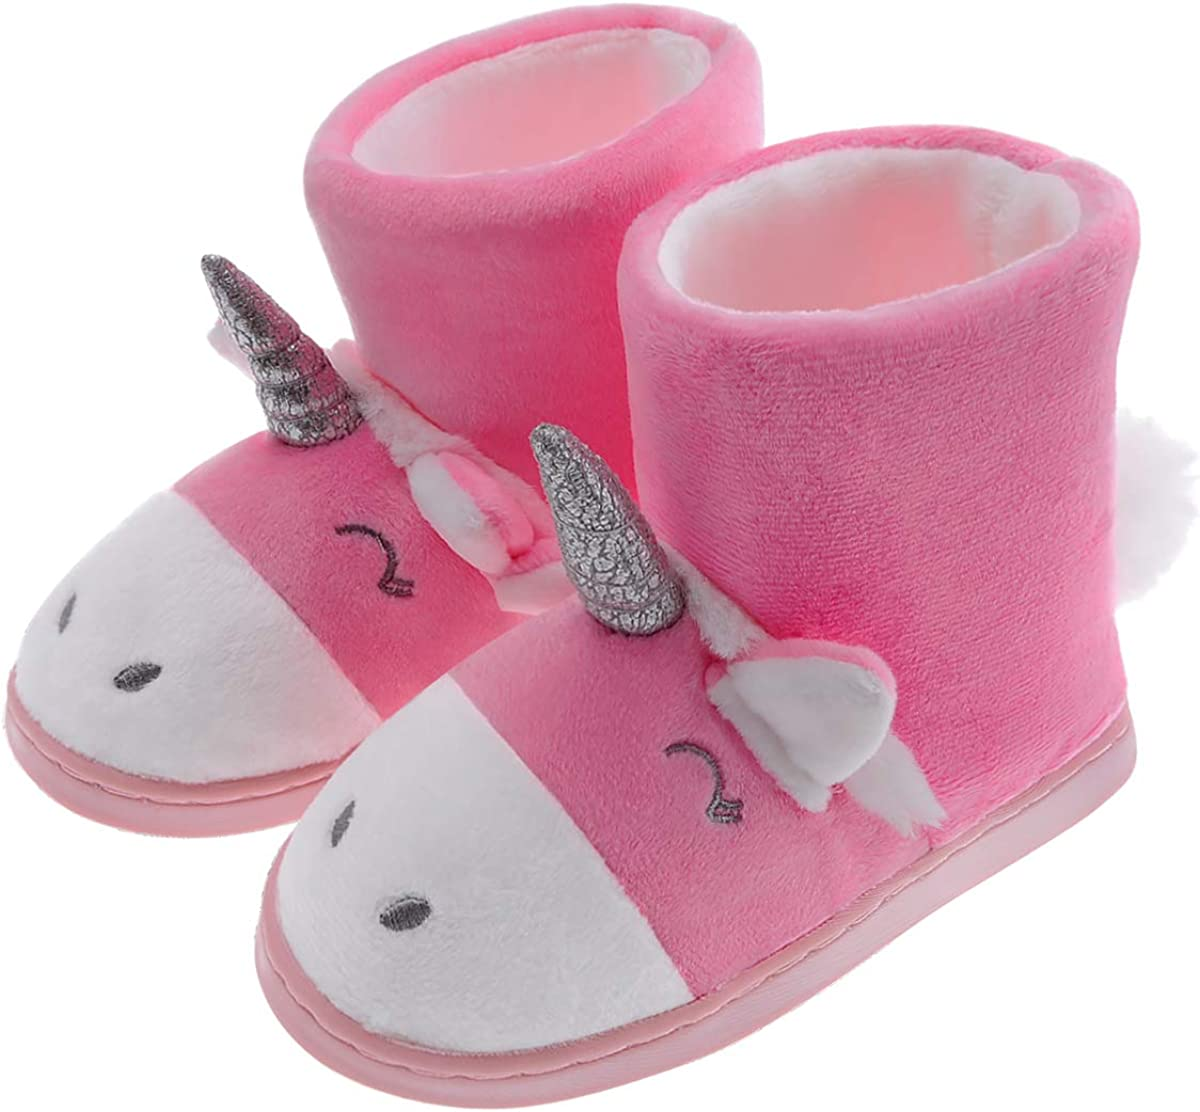 bootie slippers for toddlers